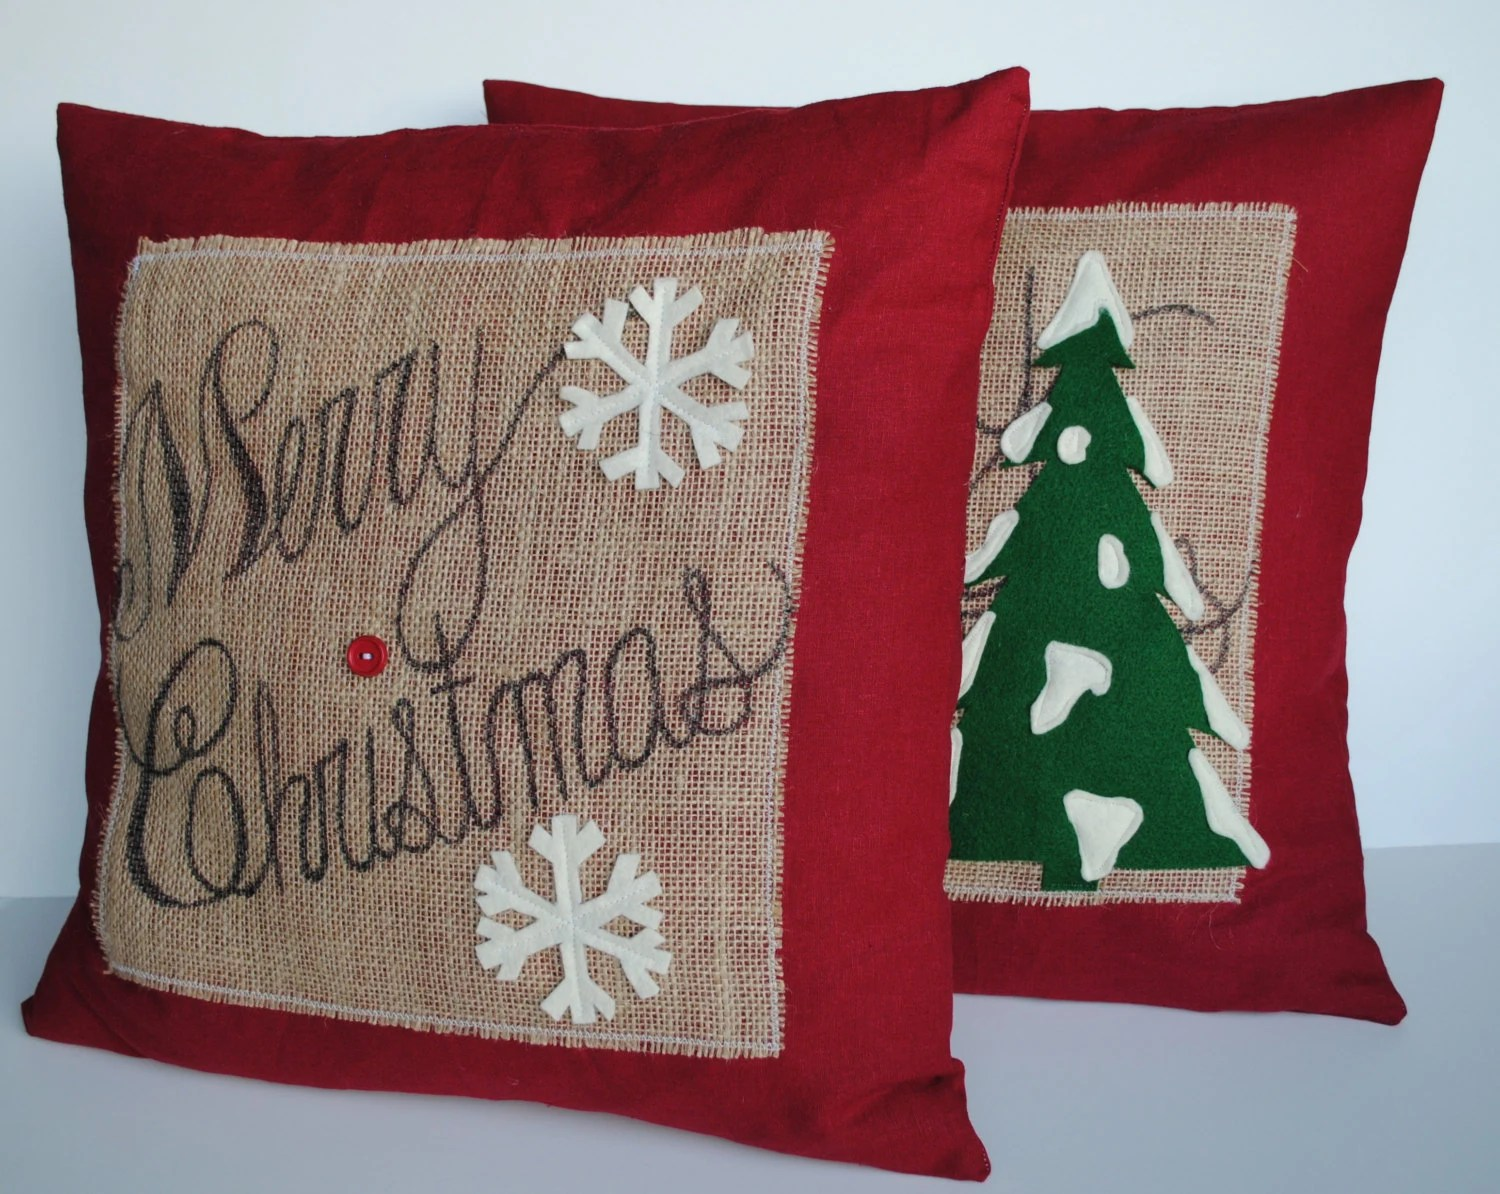 Cushion Covers Christmas Two 39merry Christmas 39 Tree Pillow Covers By